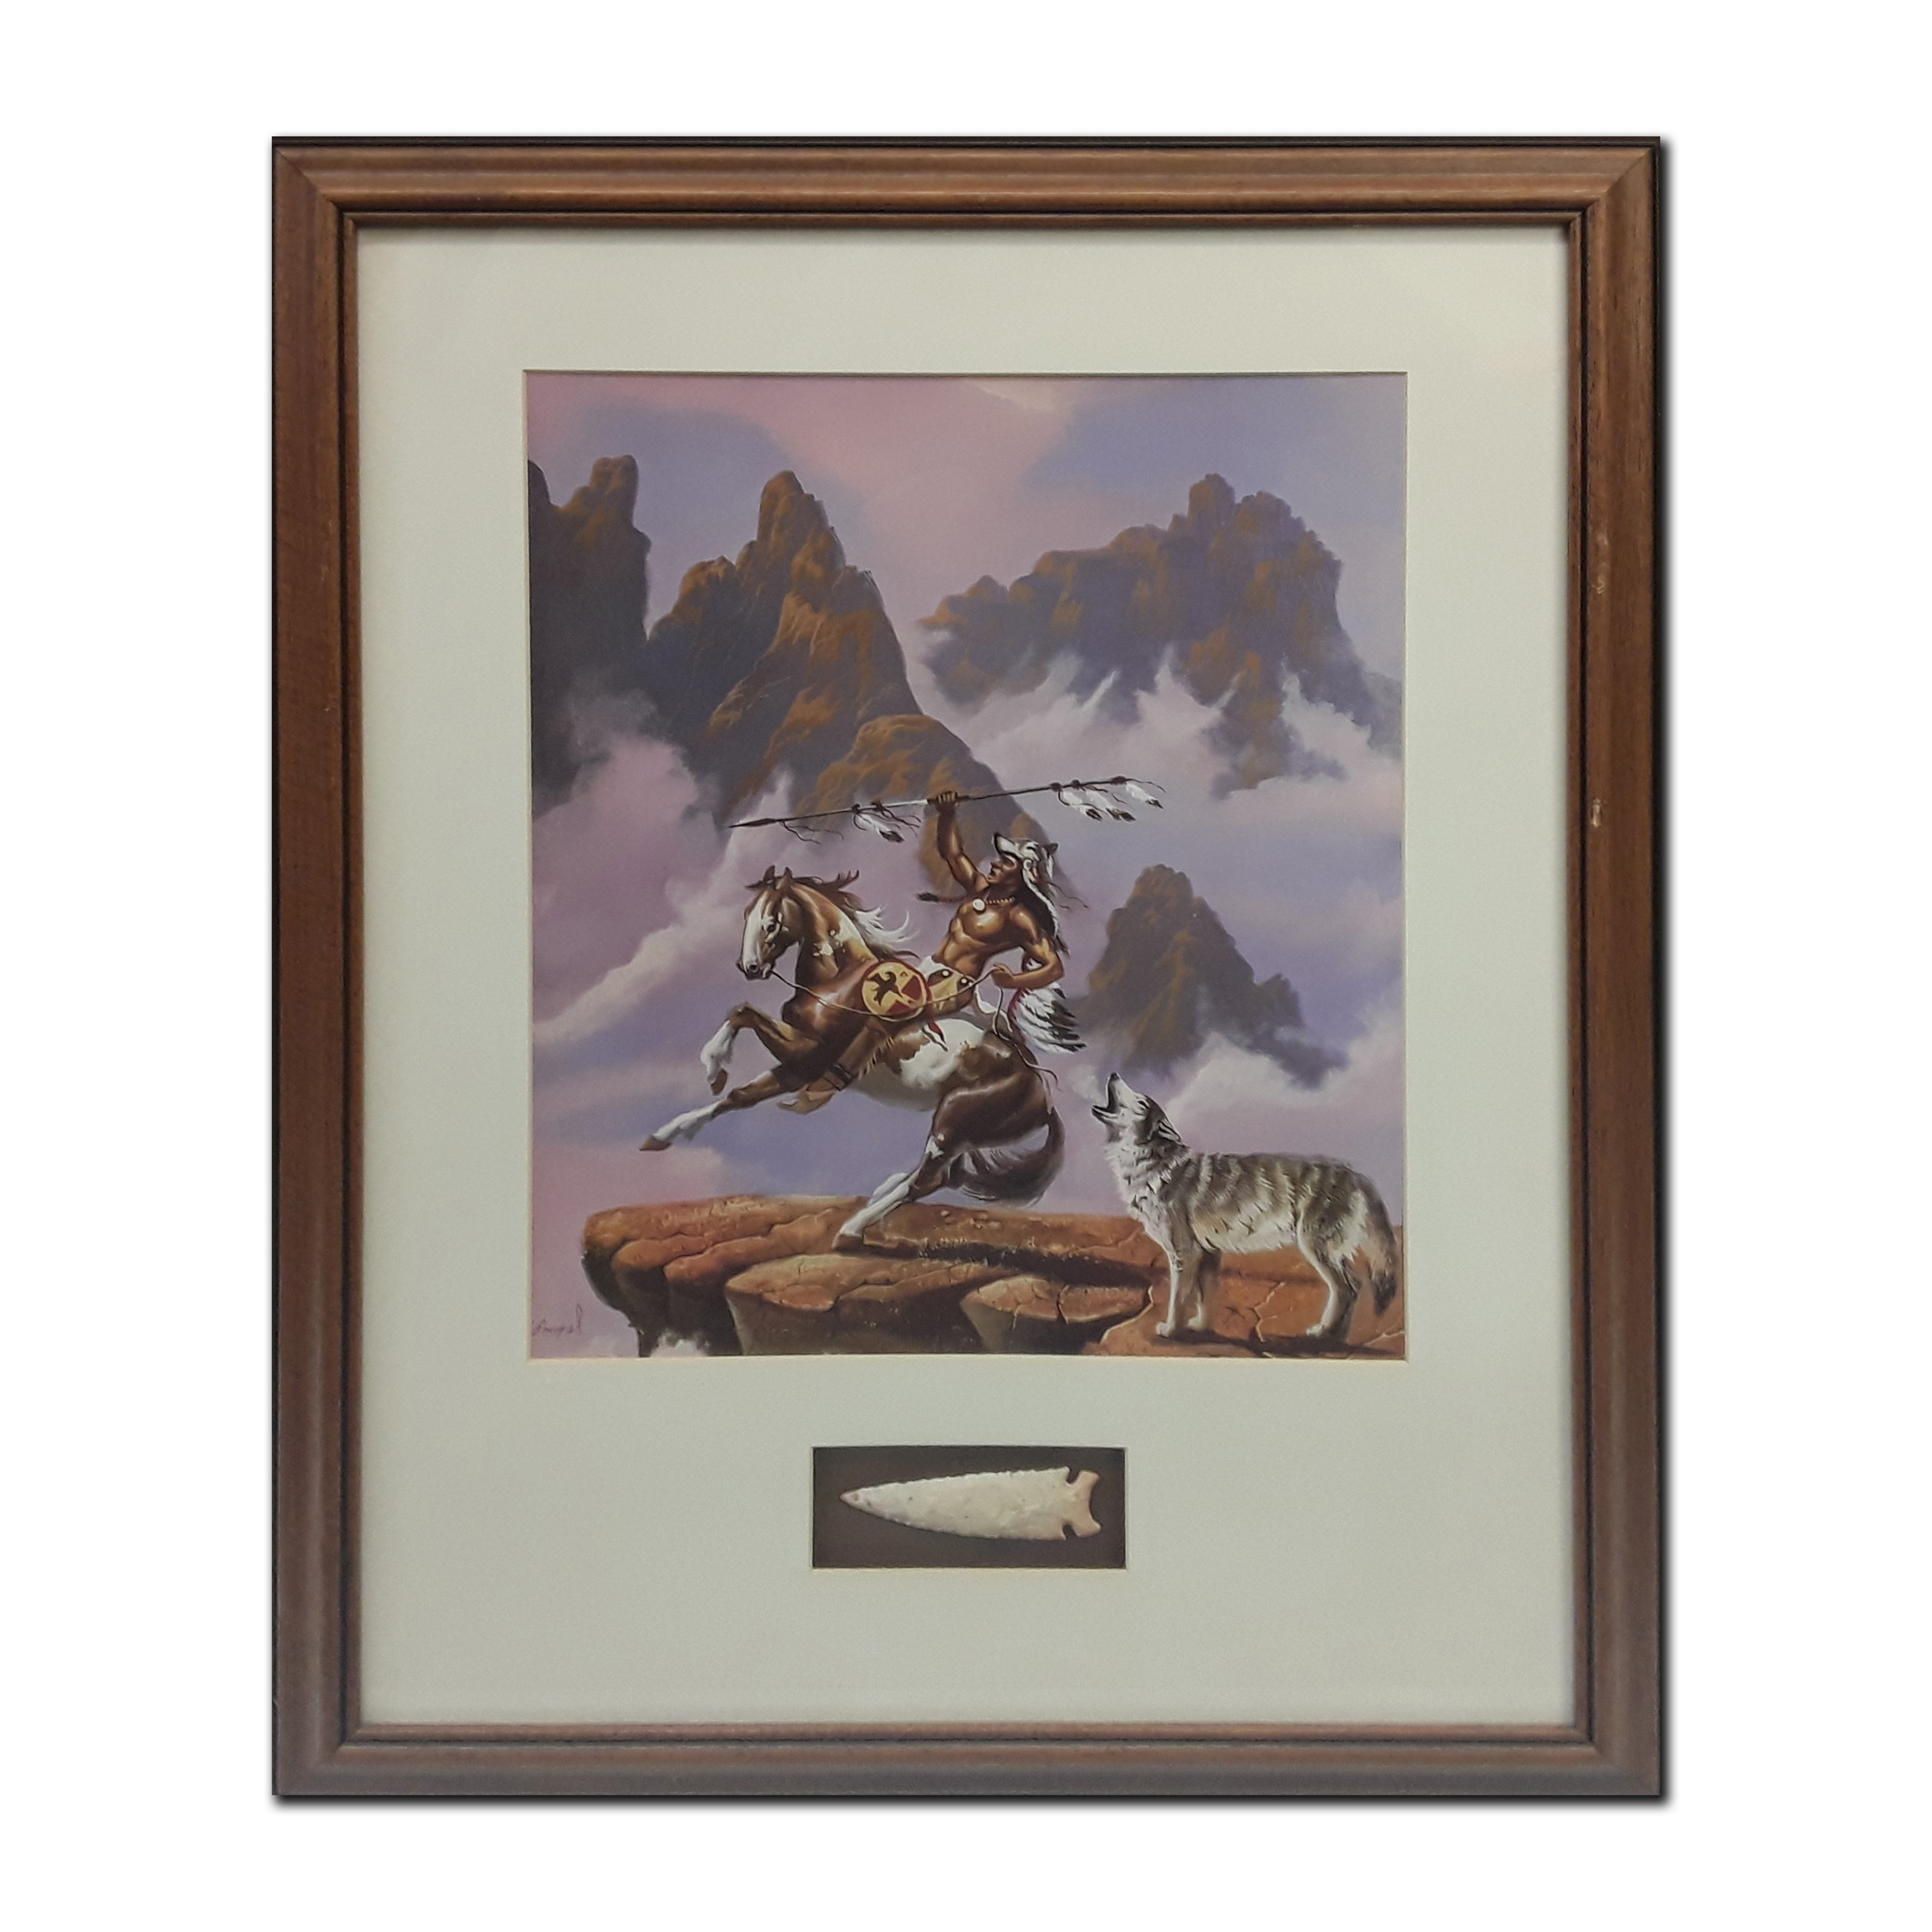 Native American Themed Framed Print With an Accompanying Native American Arrow Head (Art and Artifacts)